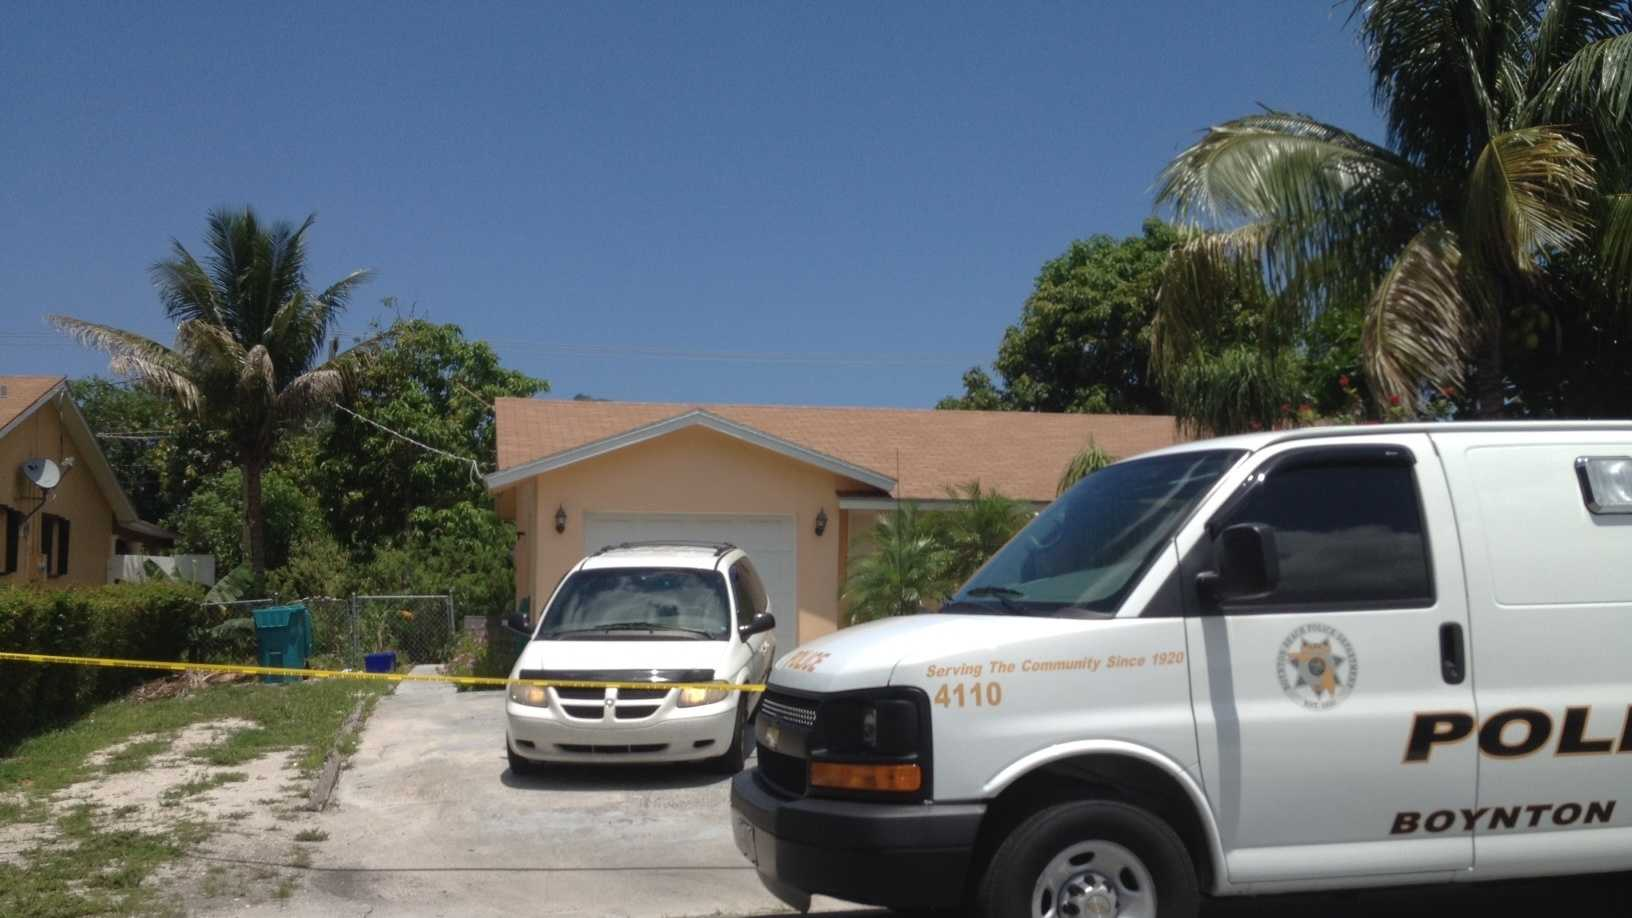 Police say a woman was found dead in the bedroom of this Boynton Beach home.